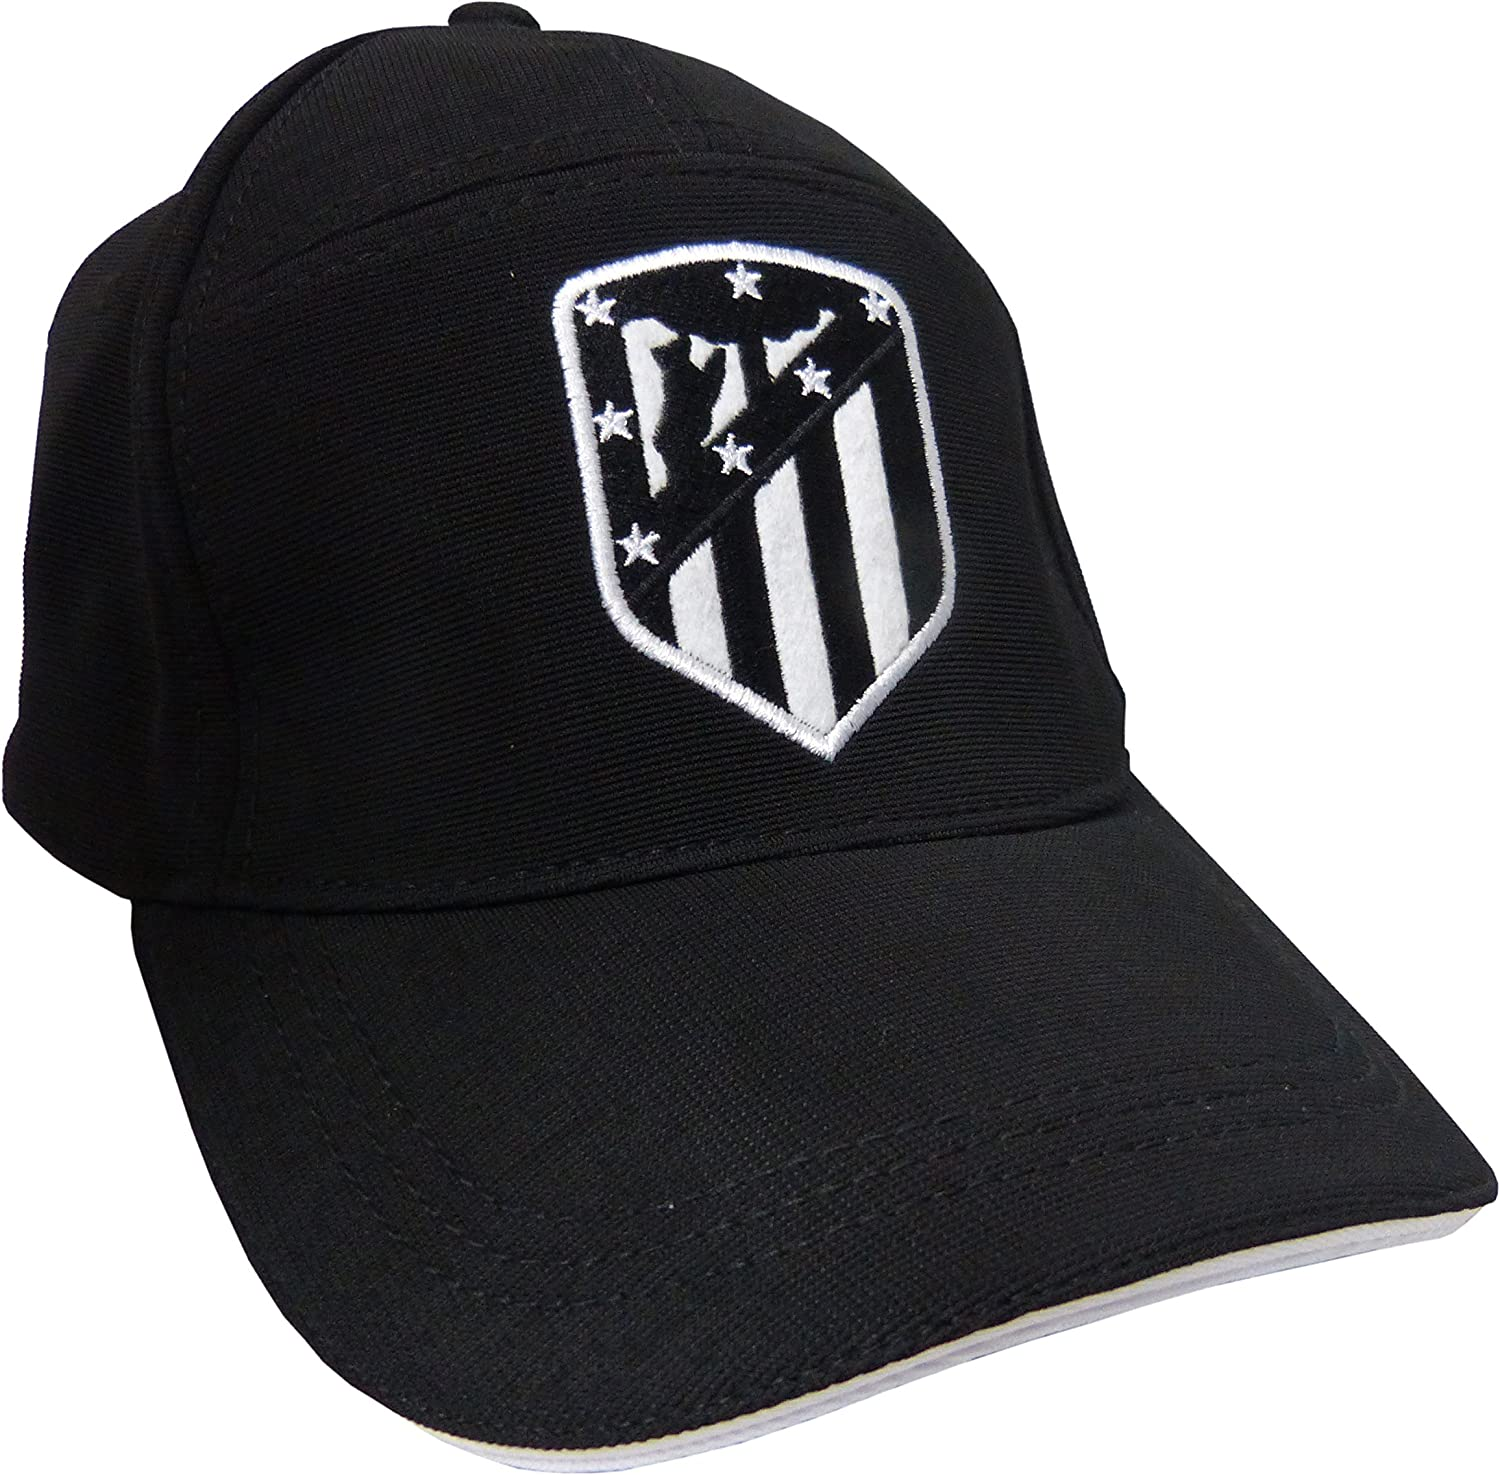 GORRA ATLETICO DE MADRID ADULTO NEGRA: Amazon.es: Deportes y aire ...